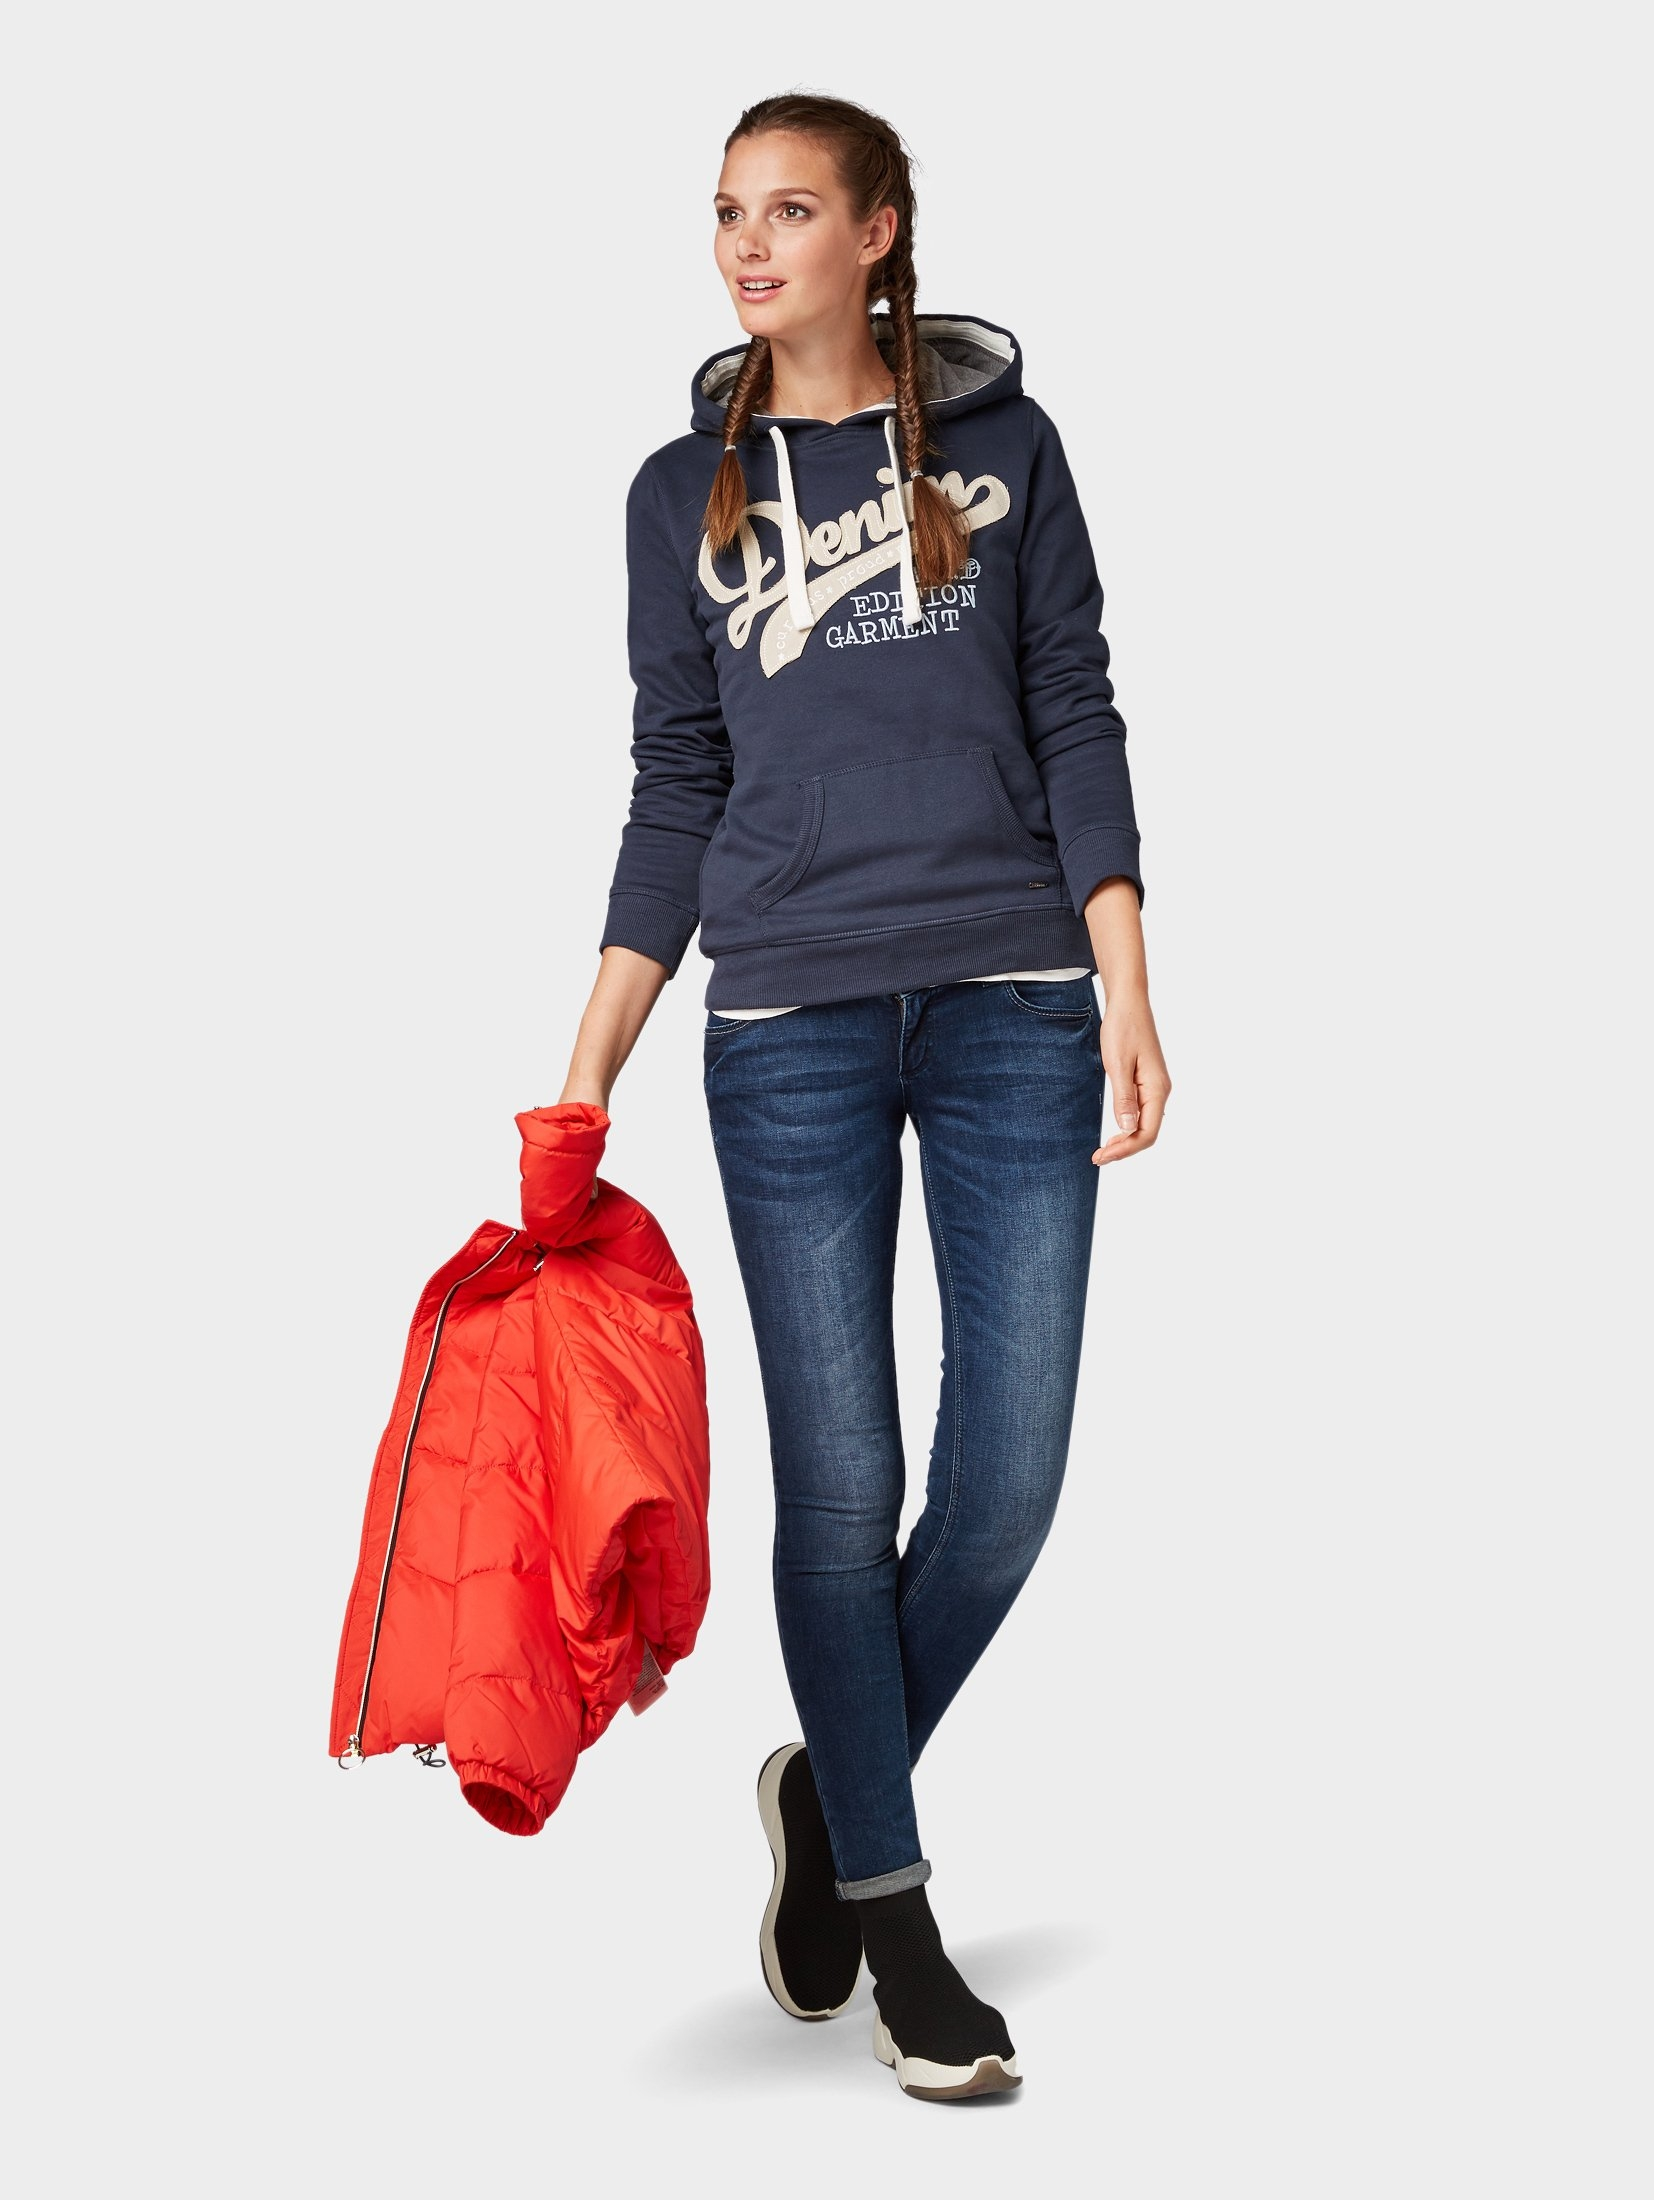 Denim Tom Hoodiehoodie Shop Met In De Tailor Online Logoprint QreCBxWdo